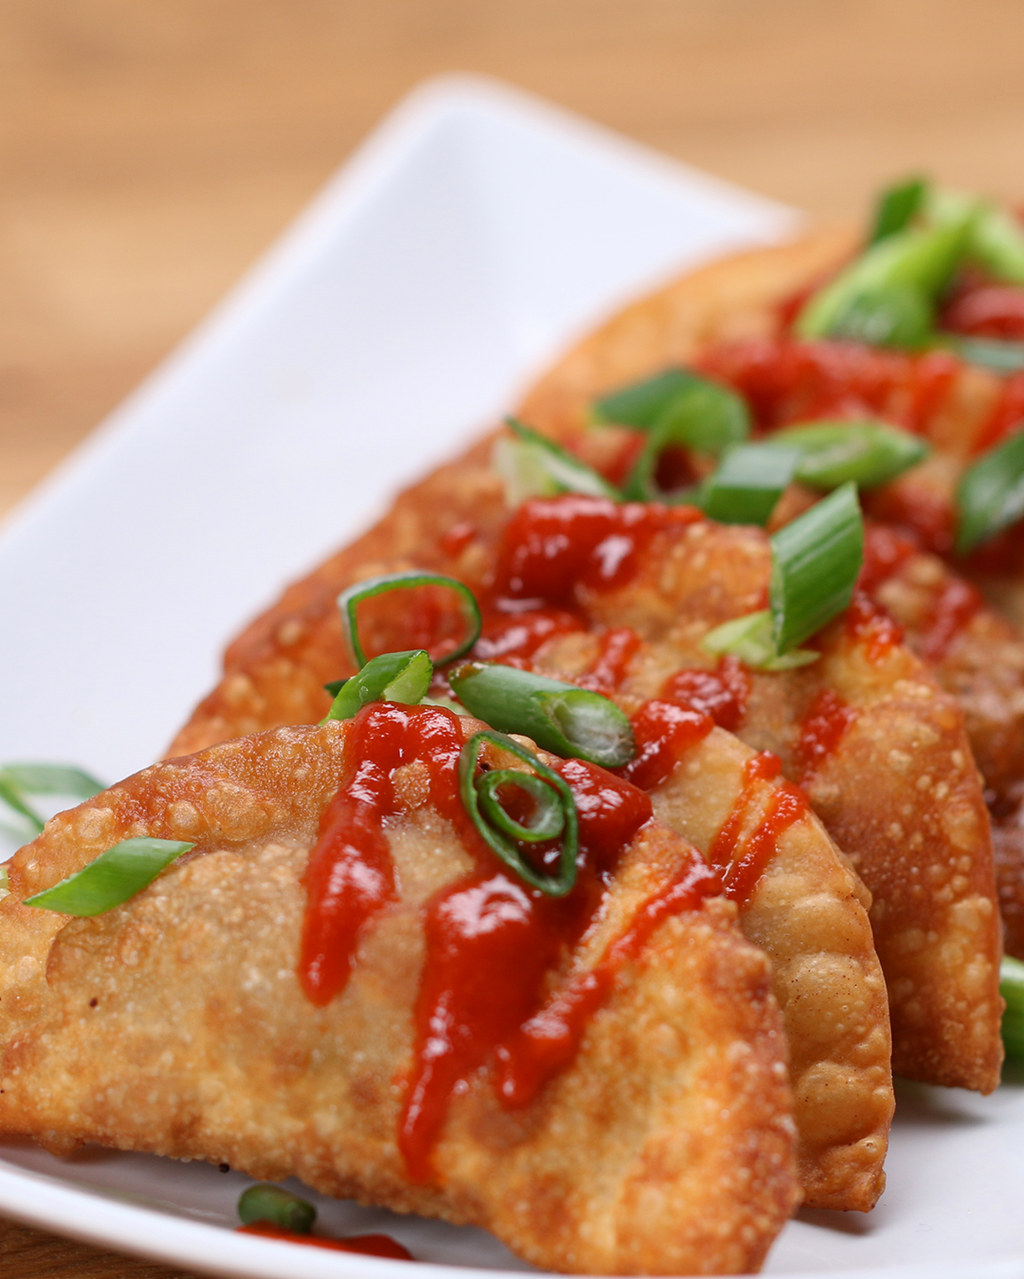 Here's A Recipe For Fried Beef Dumplings That Will Rock Your World